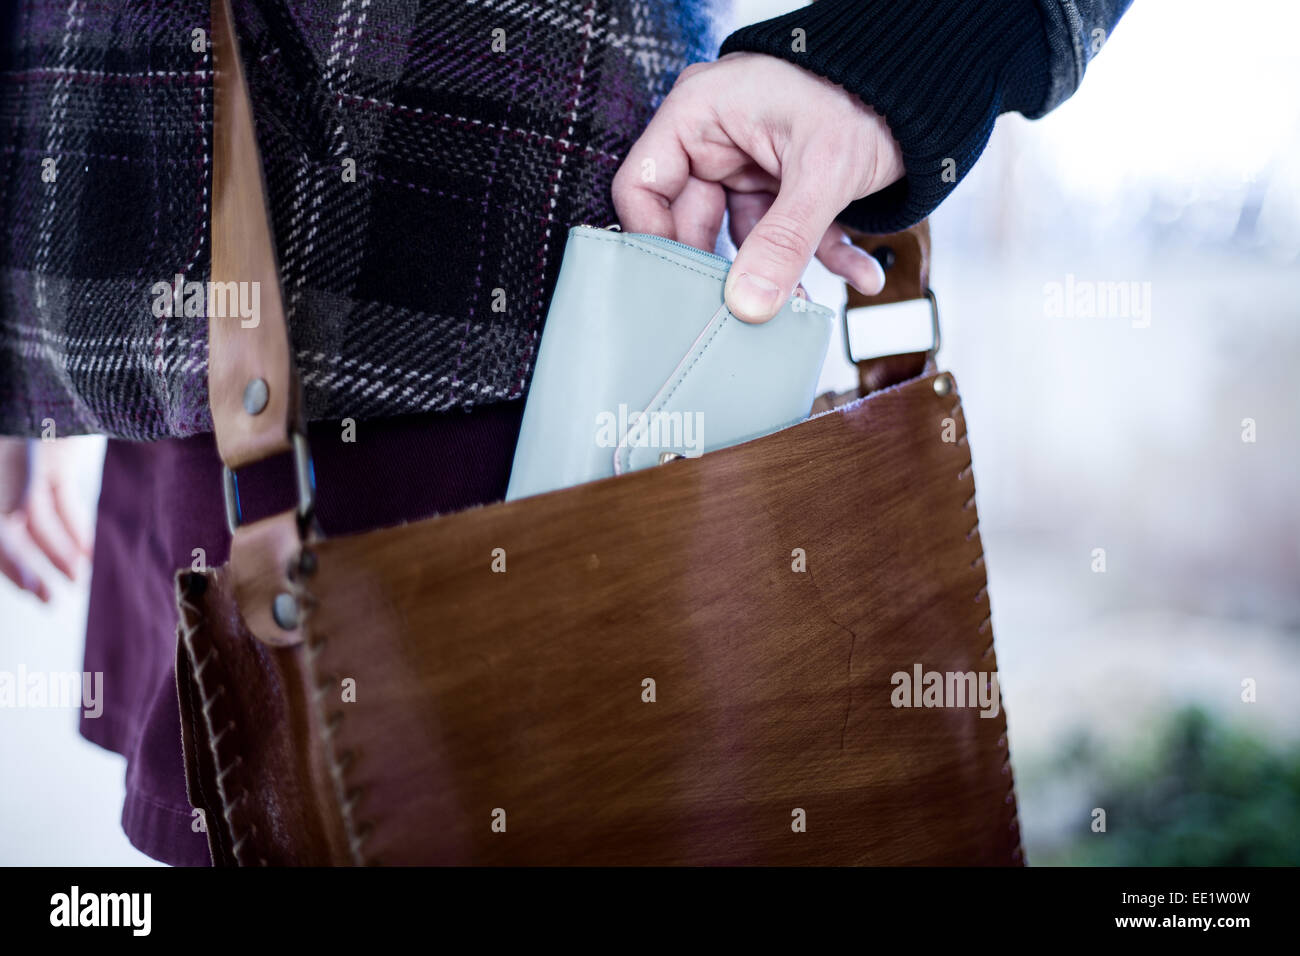 Pickpocket Stealing a Wallet from a Leather Bag - Stock Image